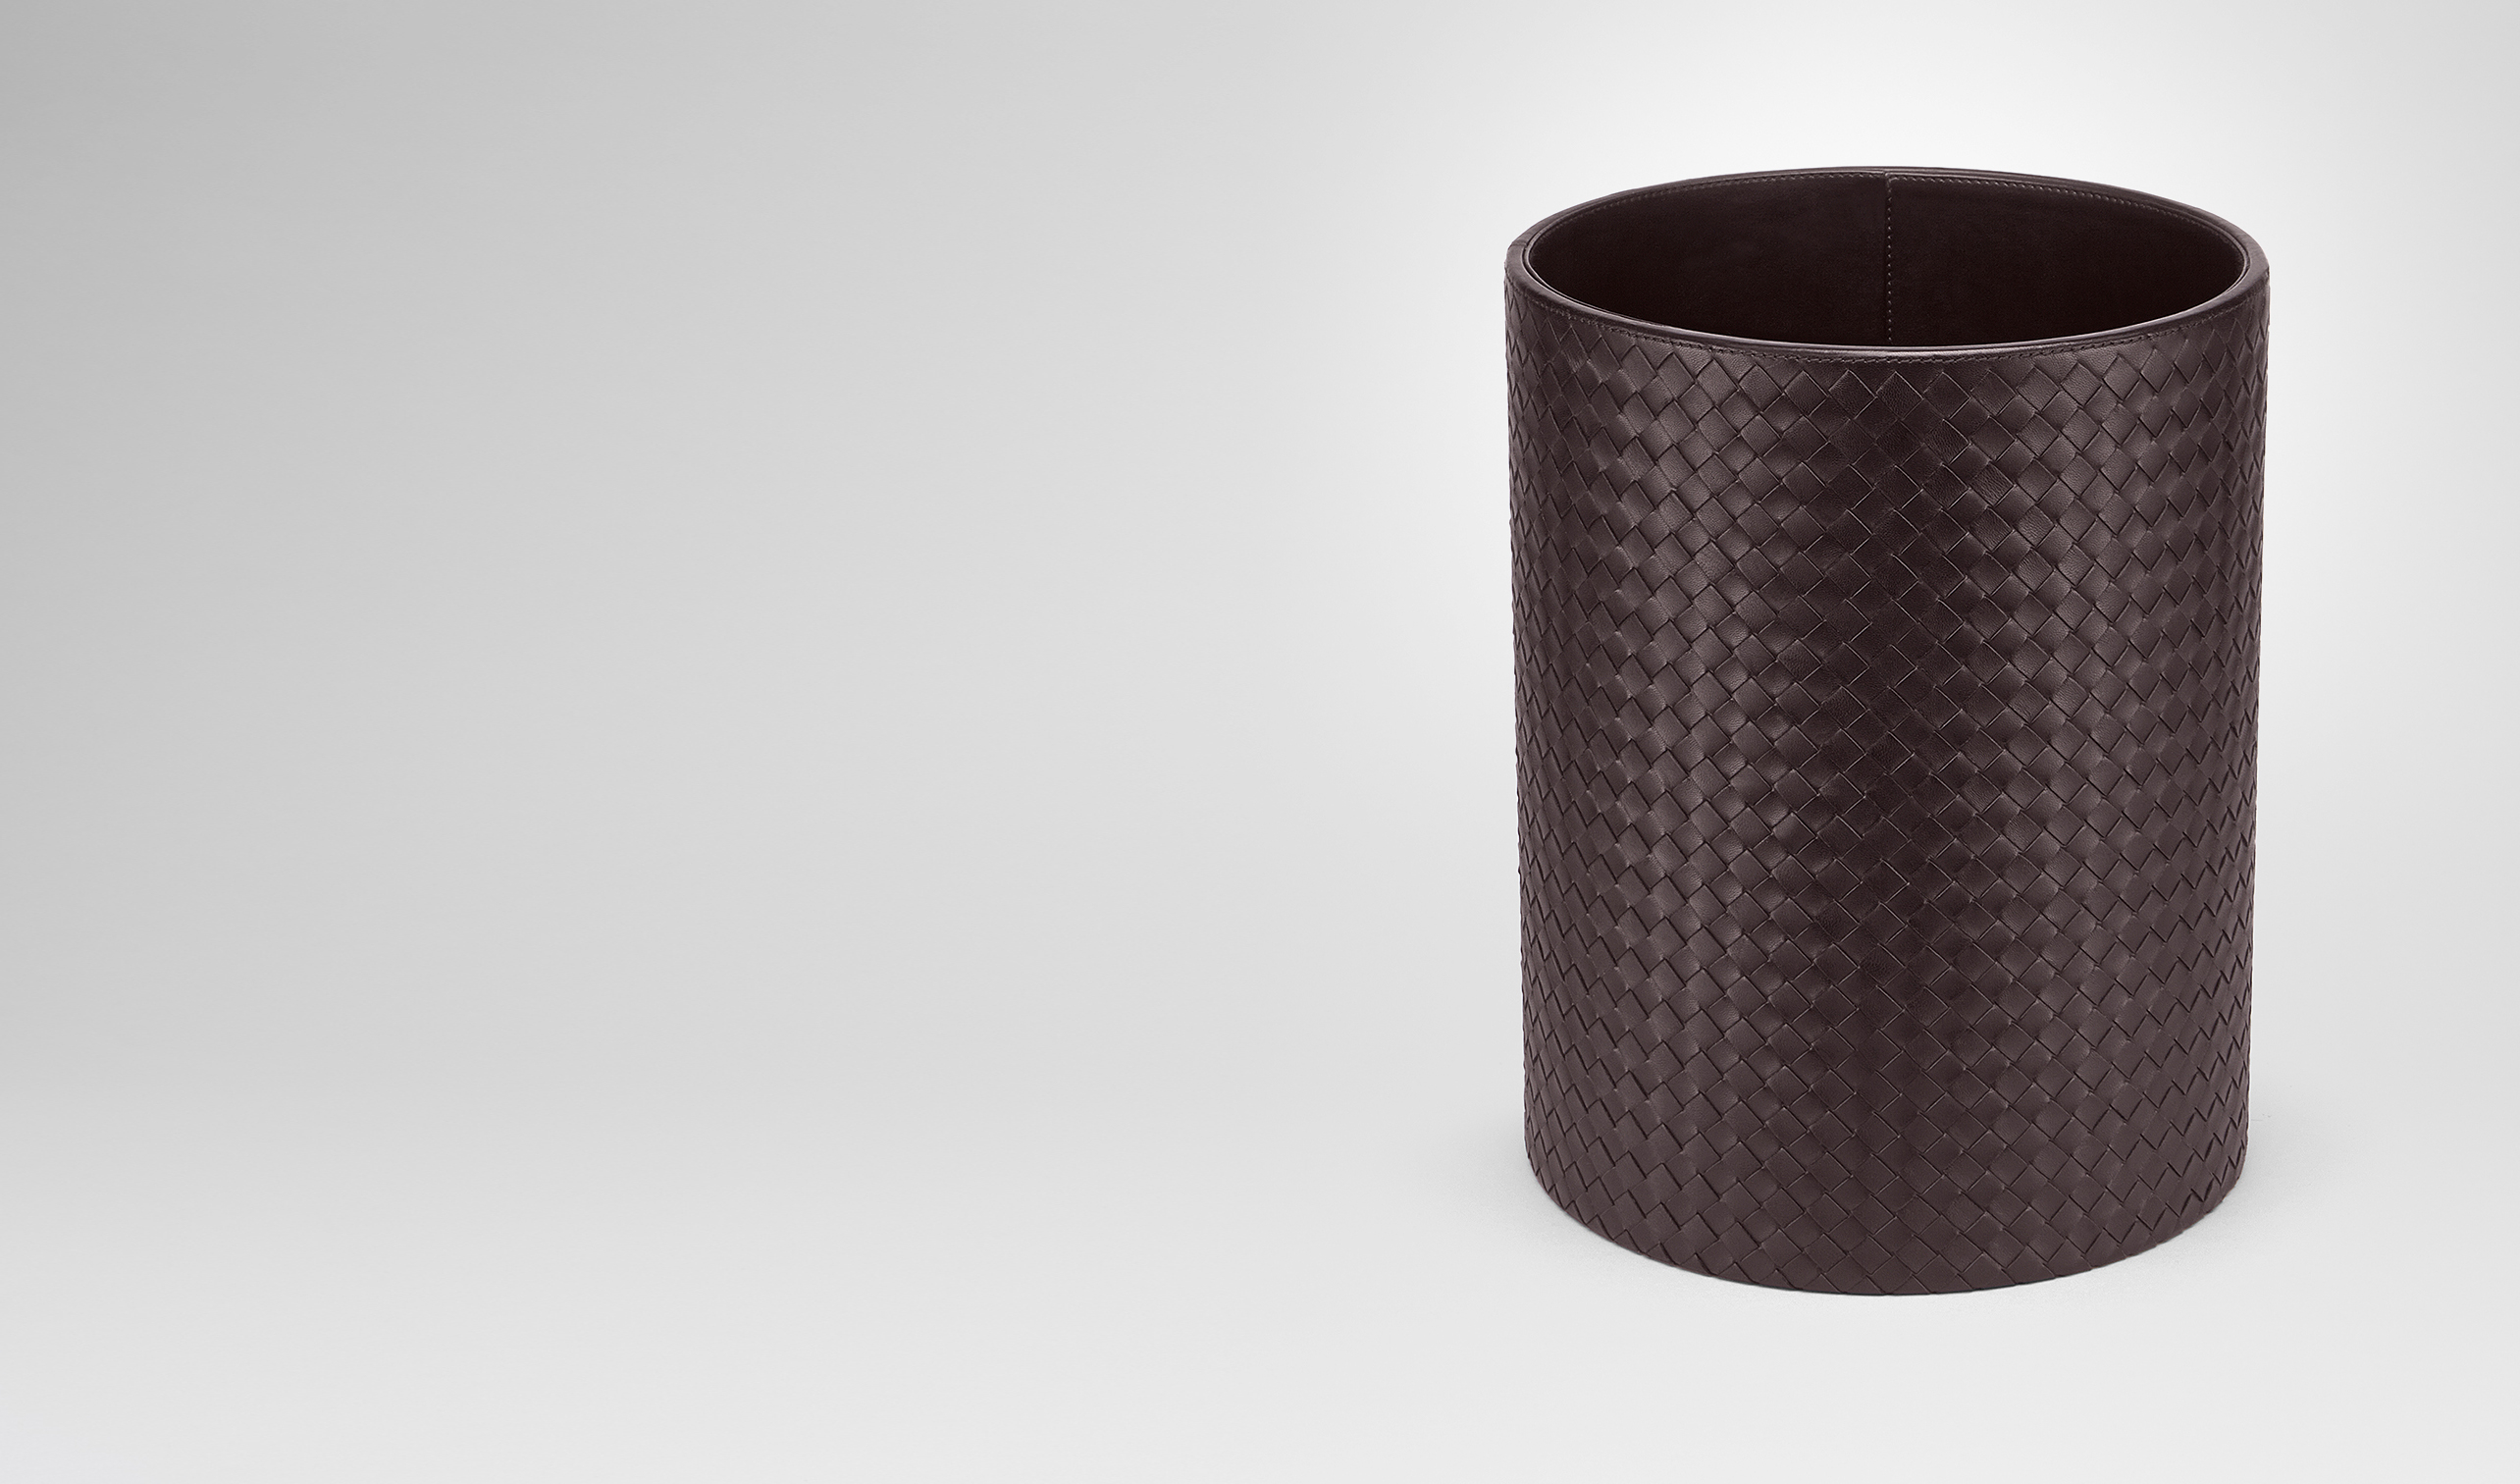 BOTTEGA VENETA Desk accessory E Ebano Intrecciato Nappa Waste Paper Basket pl